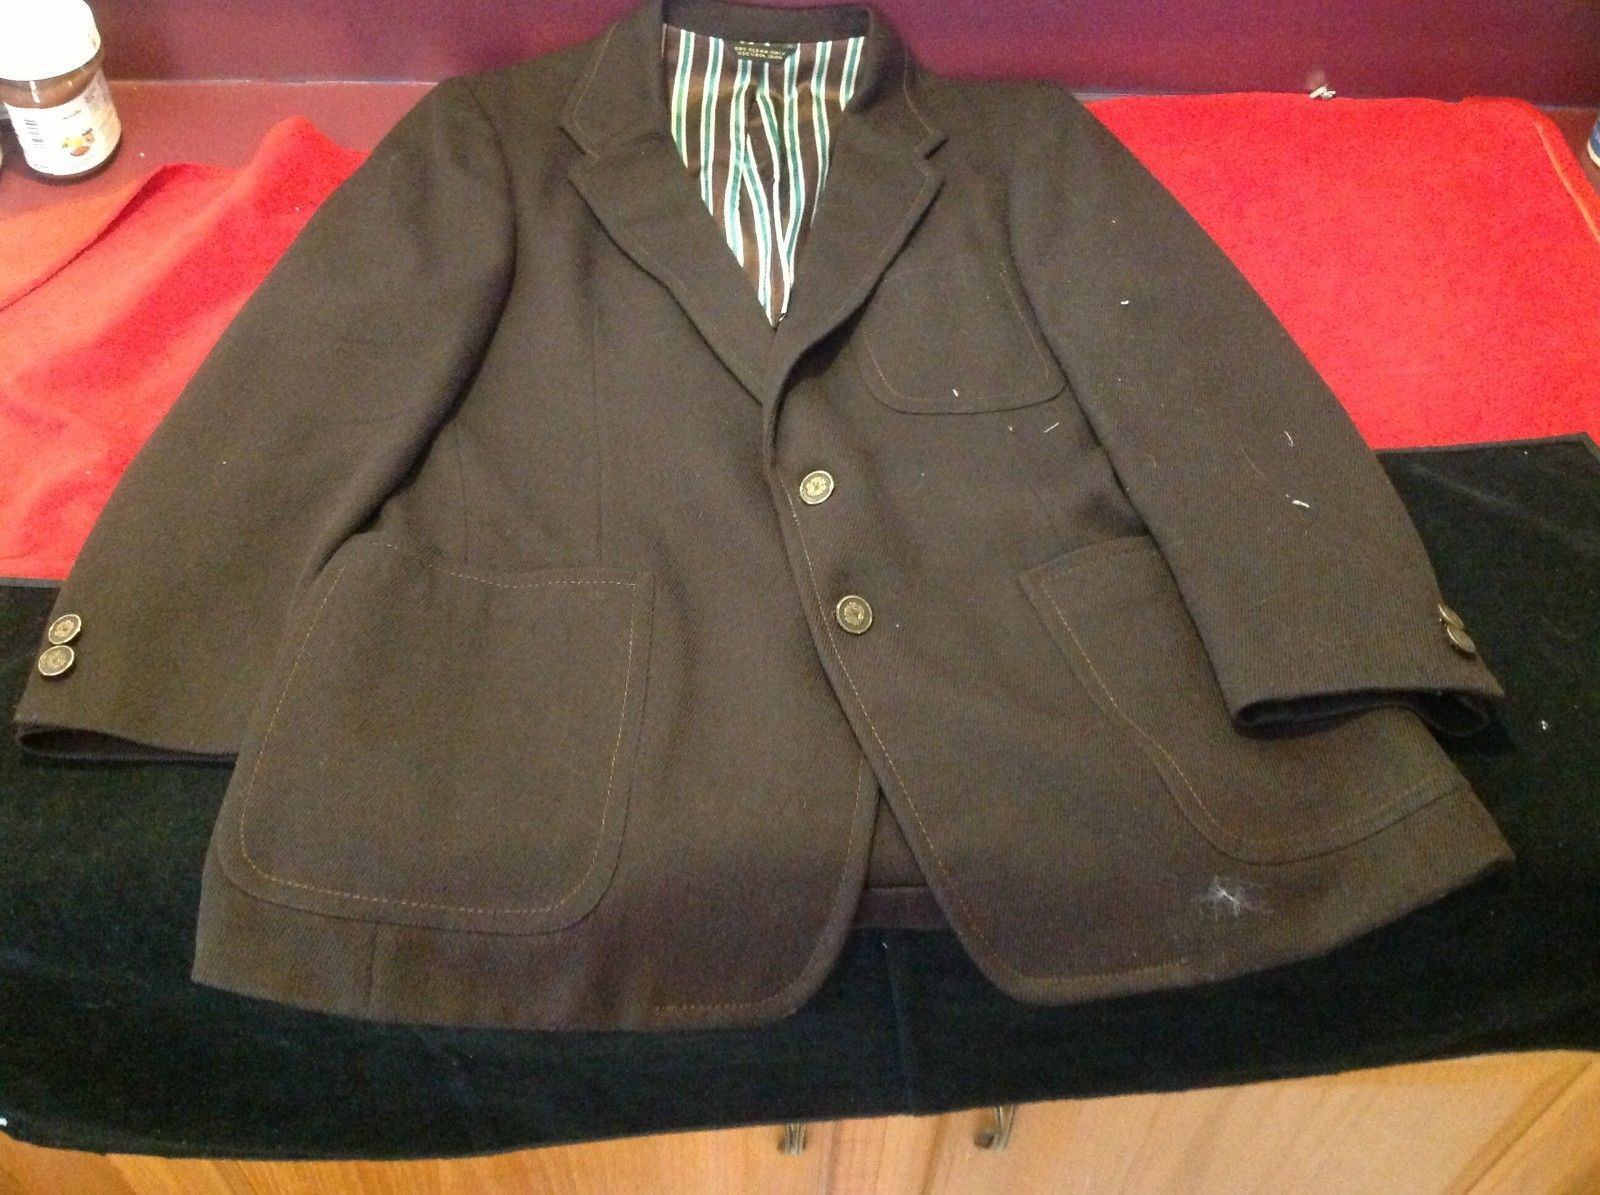 Eagle clothes man's brown blazer 22 in wide 30 in long B&B Lorry's